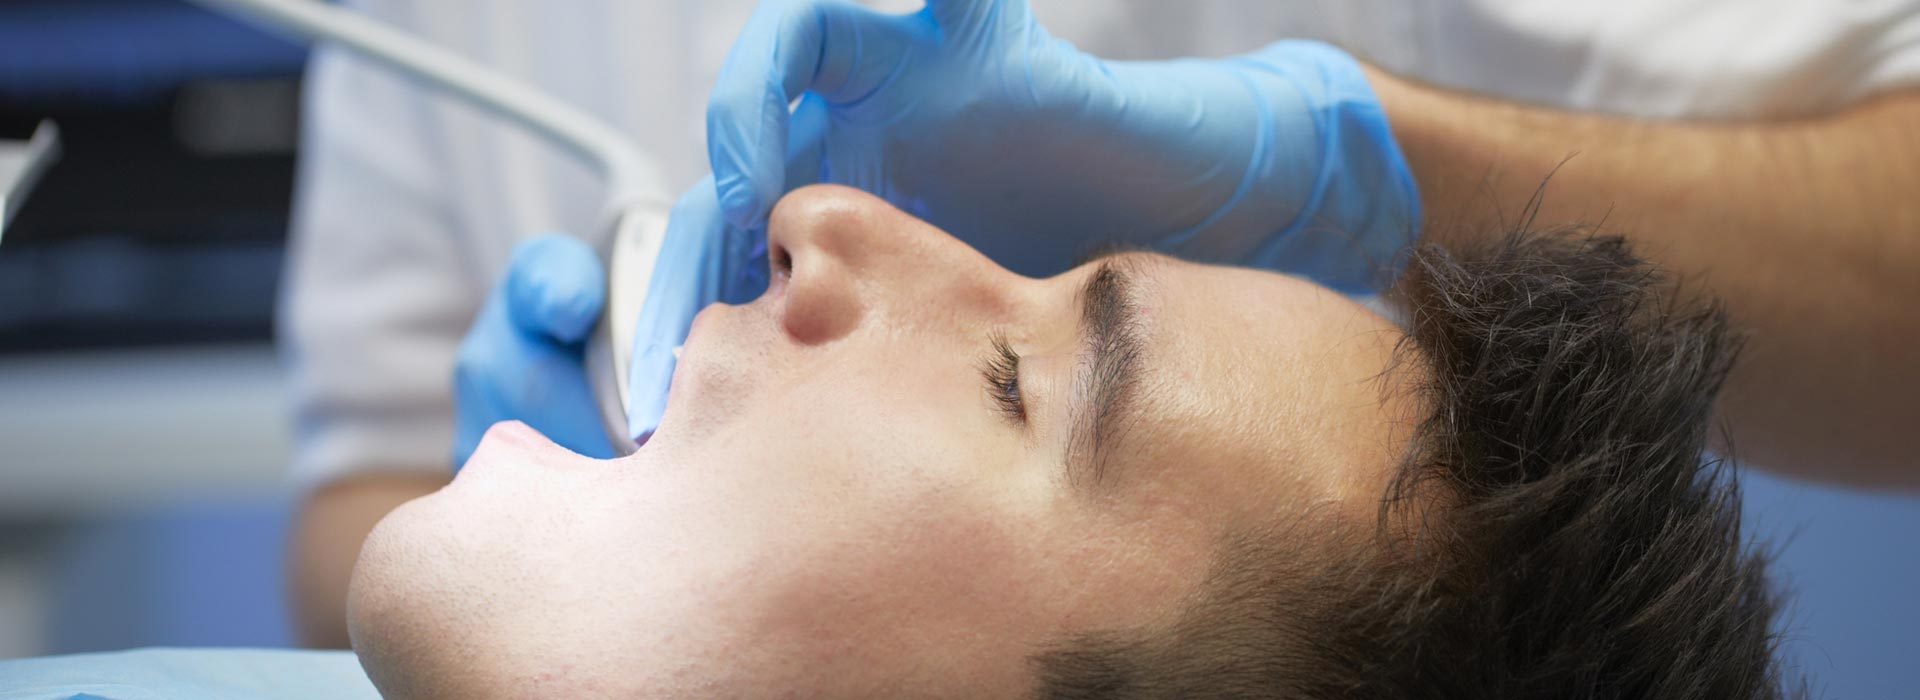 A dentist doing oral surgery